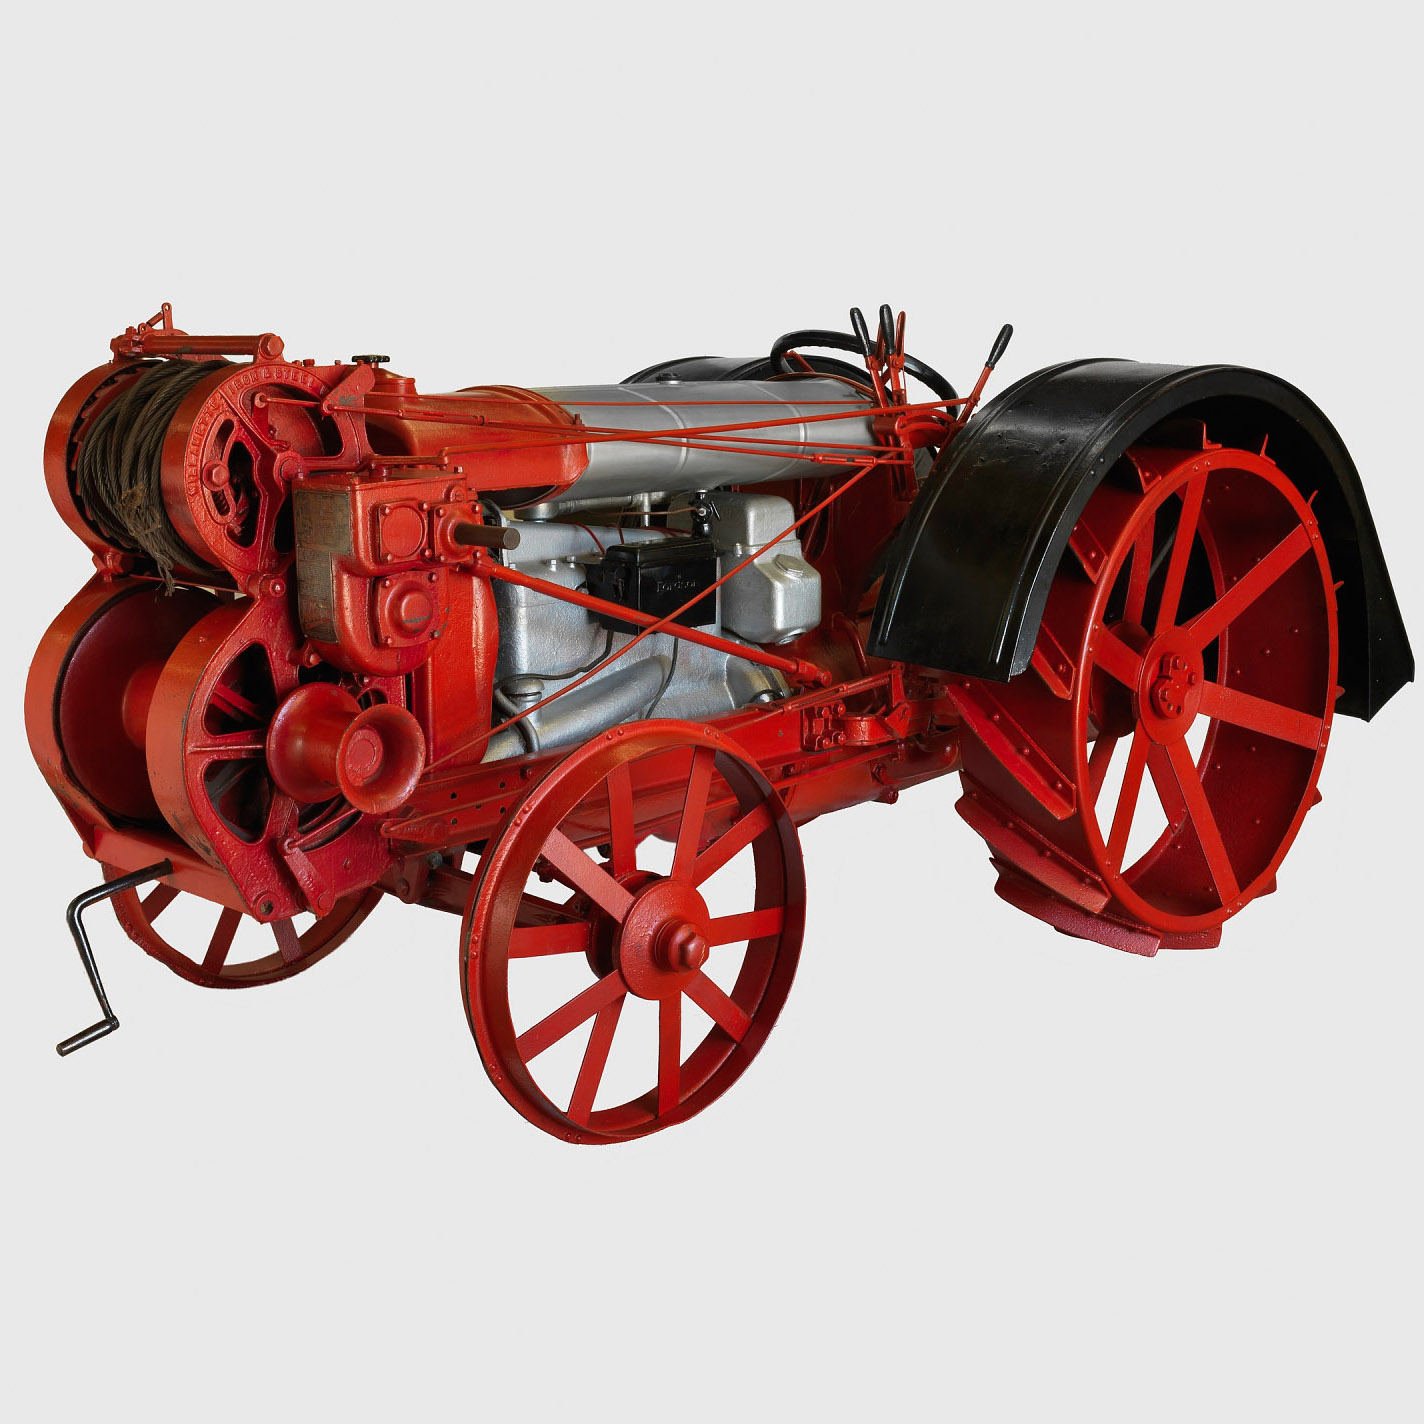 These tractors show 150 years of farming history | National Museum